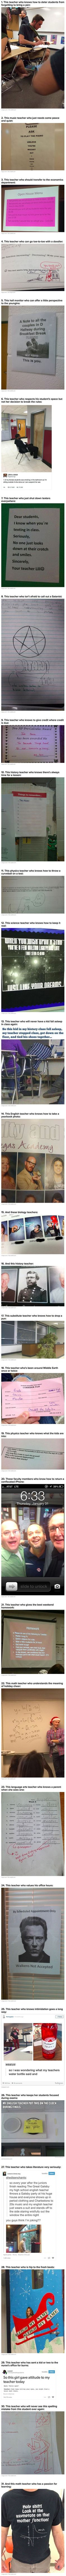 Here are some funny and nerdy teachers who make school interesting. - Here are some funny and nerdy teachers who make school interesting. The Effective Pictures We Offer -